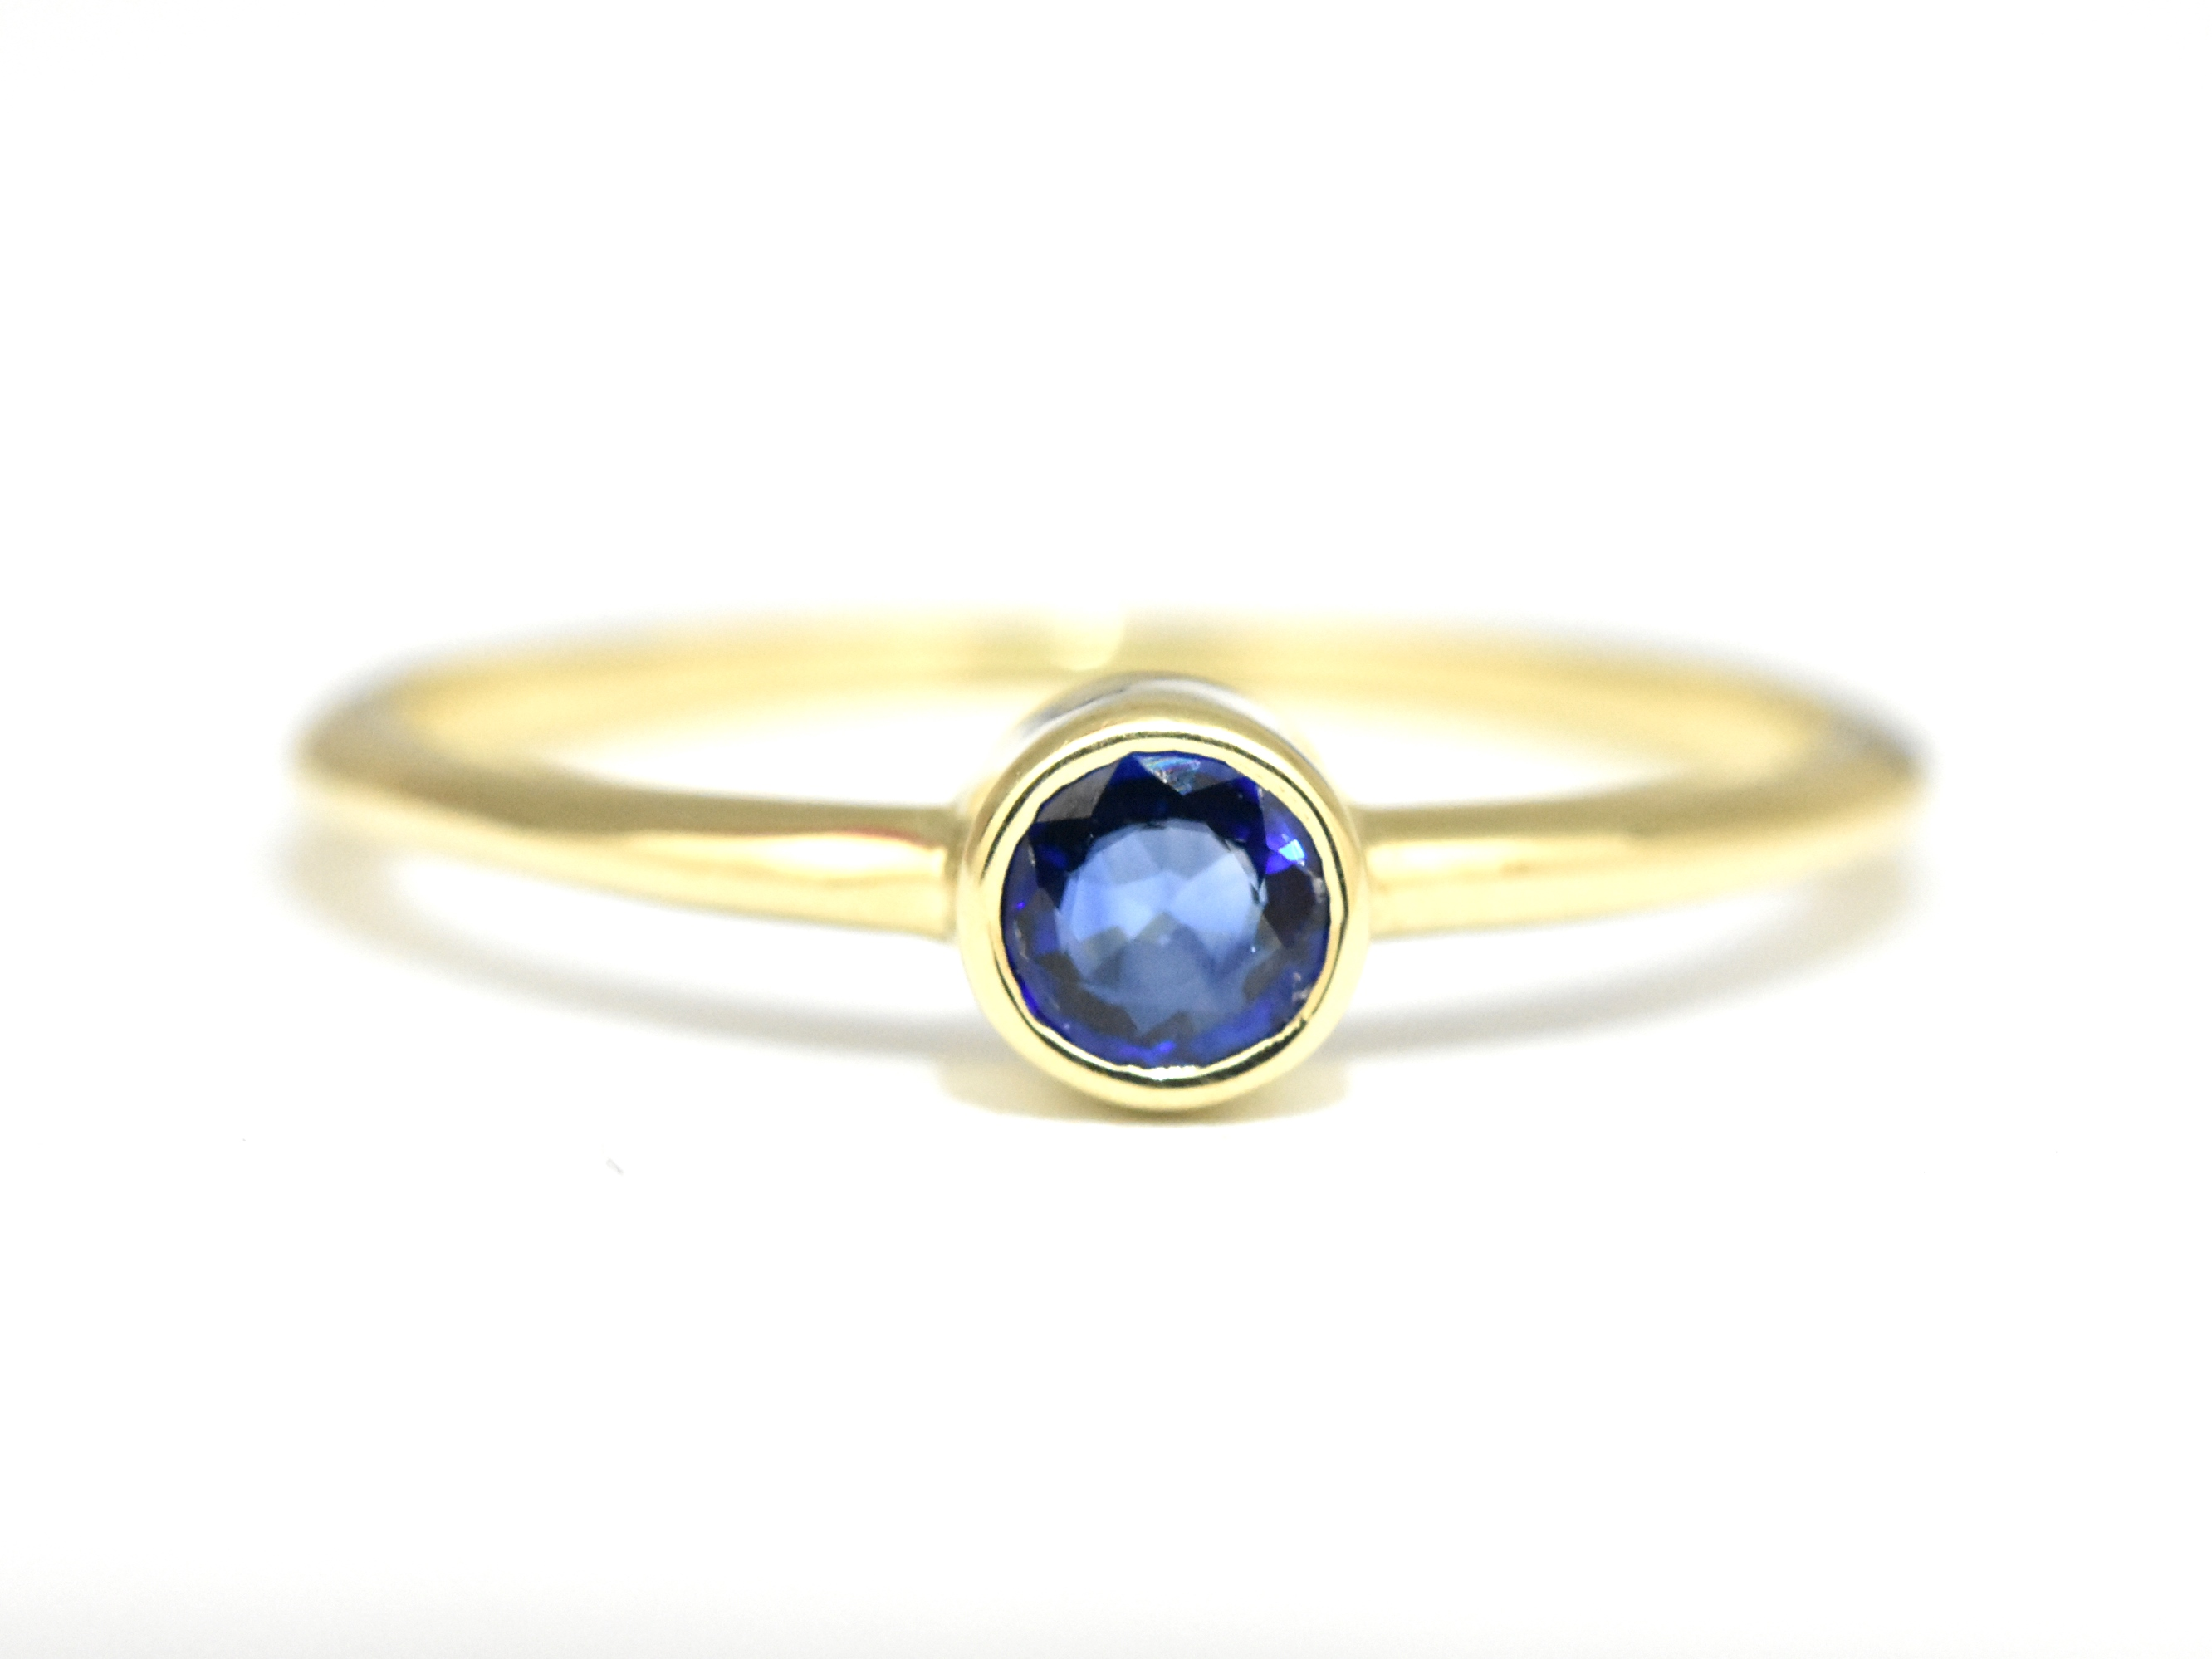 ring sale jewelry natural rings antique z blue boucheron real sapphire heat time at stone paris gold carat star no yellow agl for org